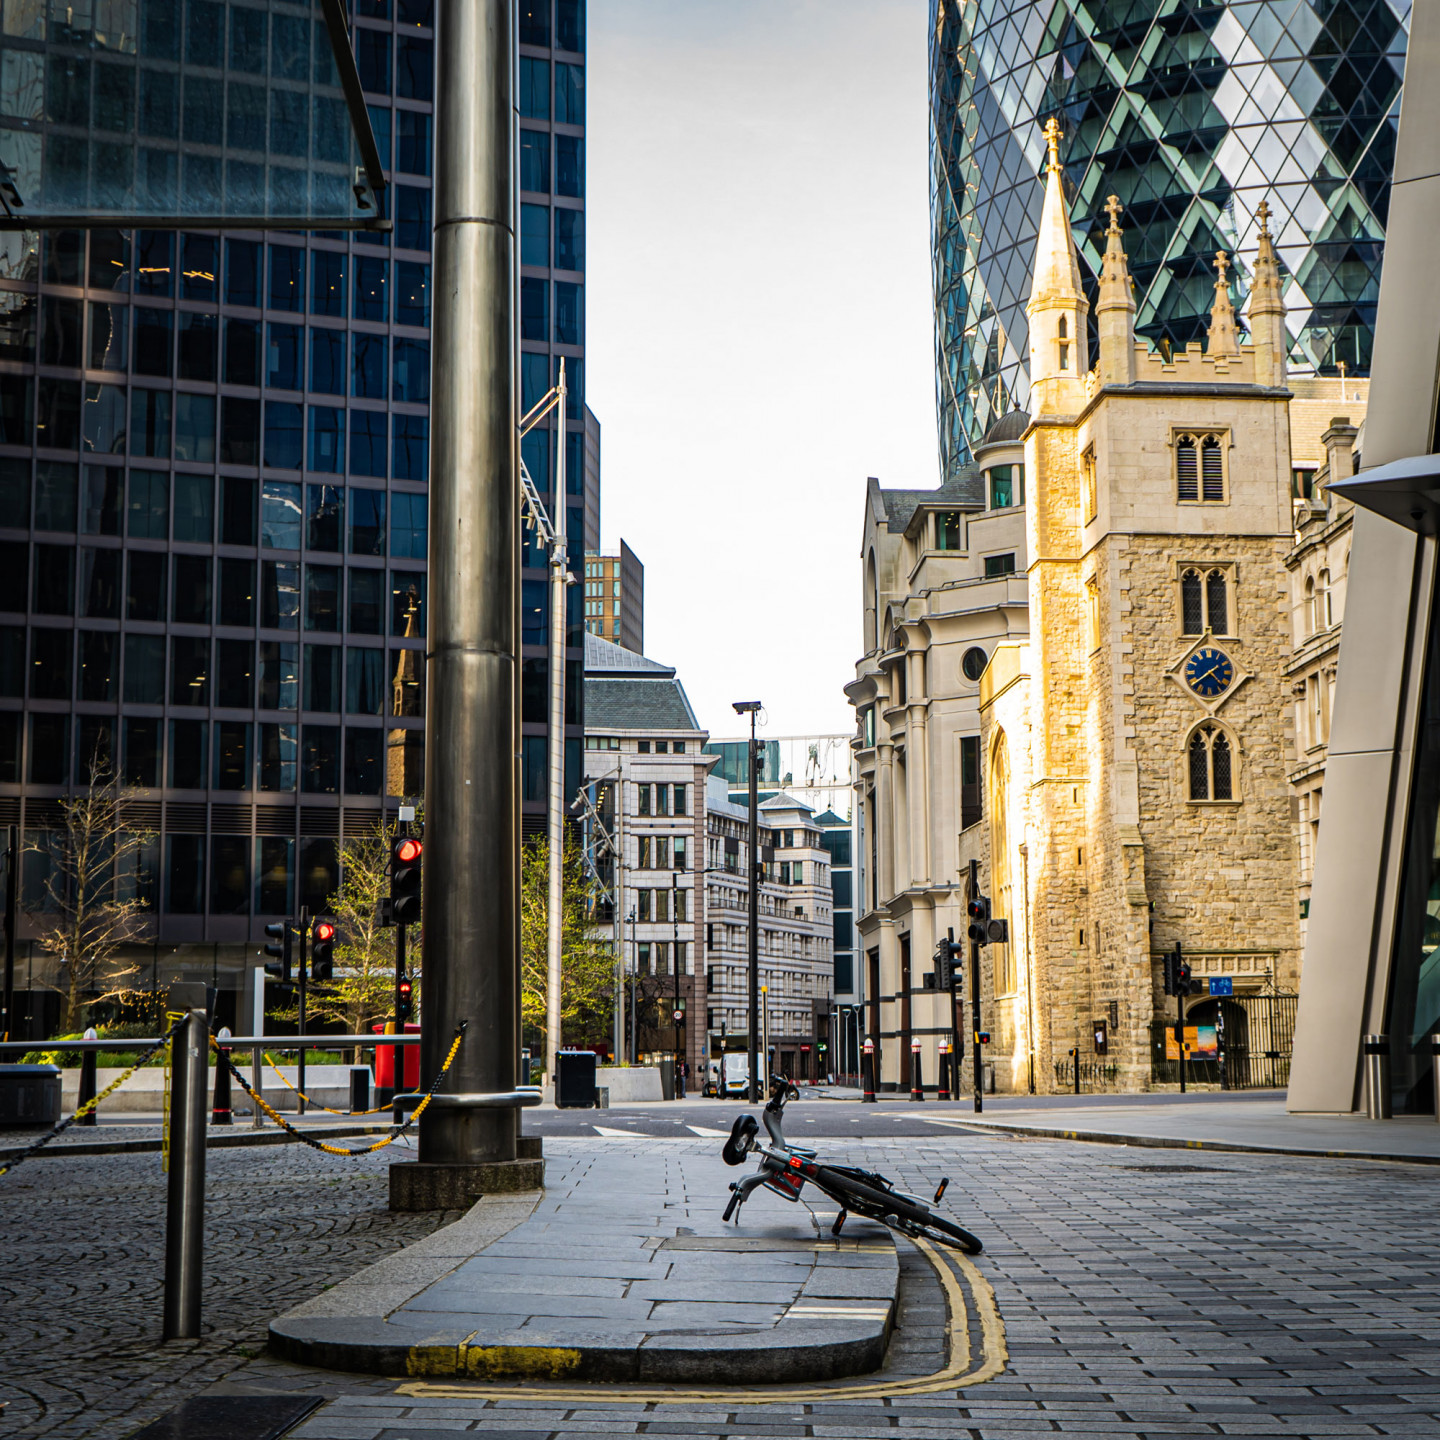 Deserted streets around the Gherkin during rush hour, London, May. © Richard Lawrence